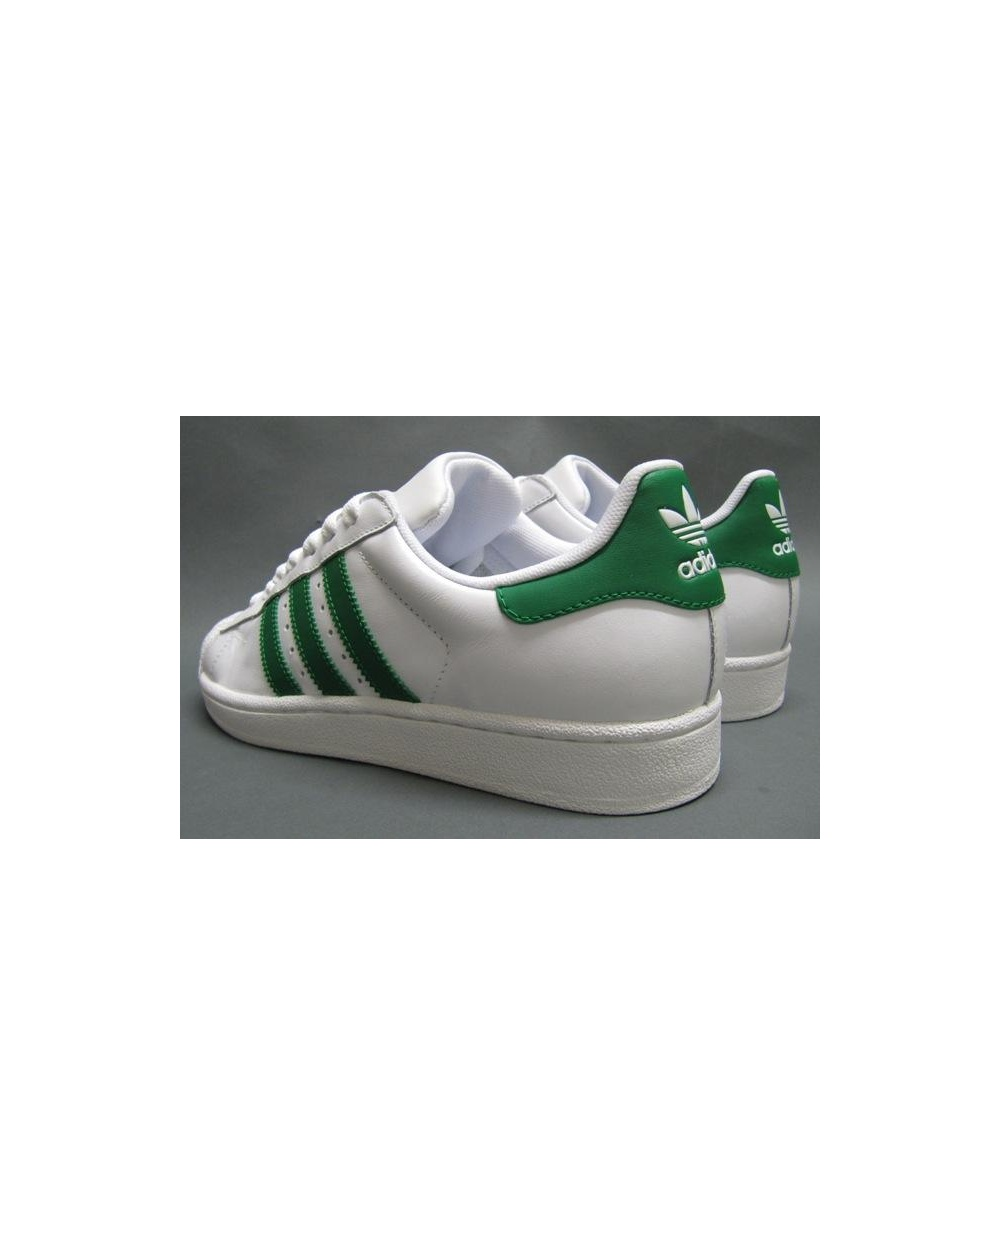 watch dbb25 d683a Adidas Superstar White With Green Stripes aoriginal.co.uk